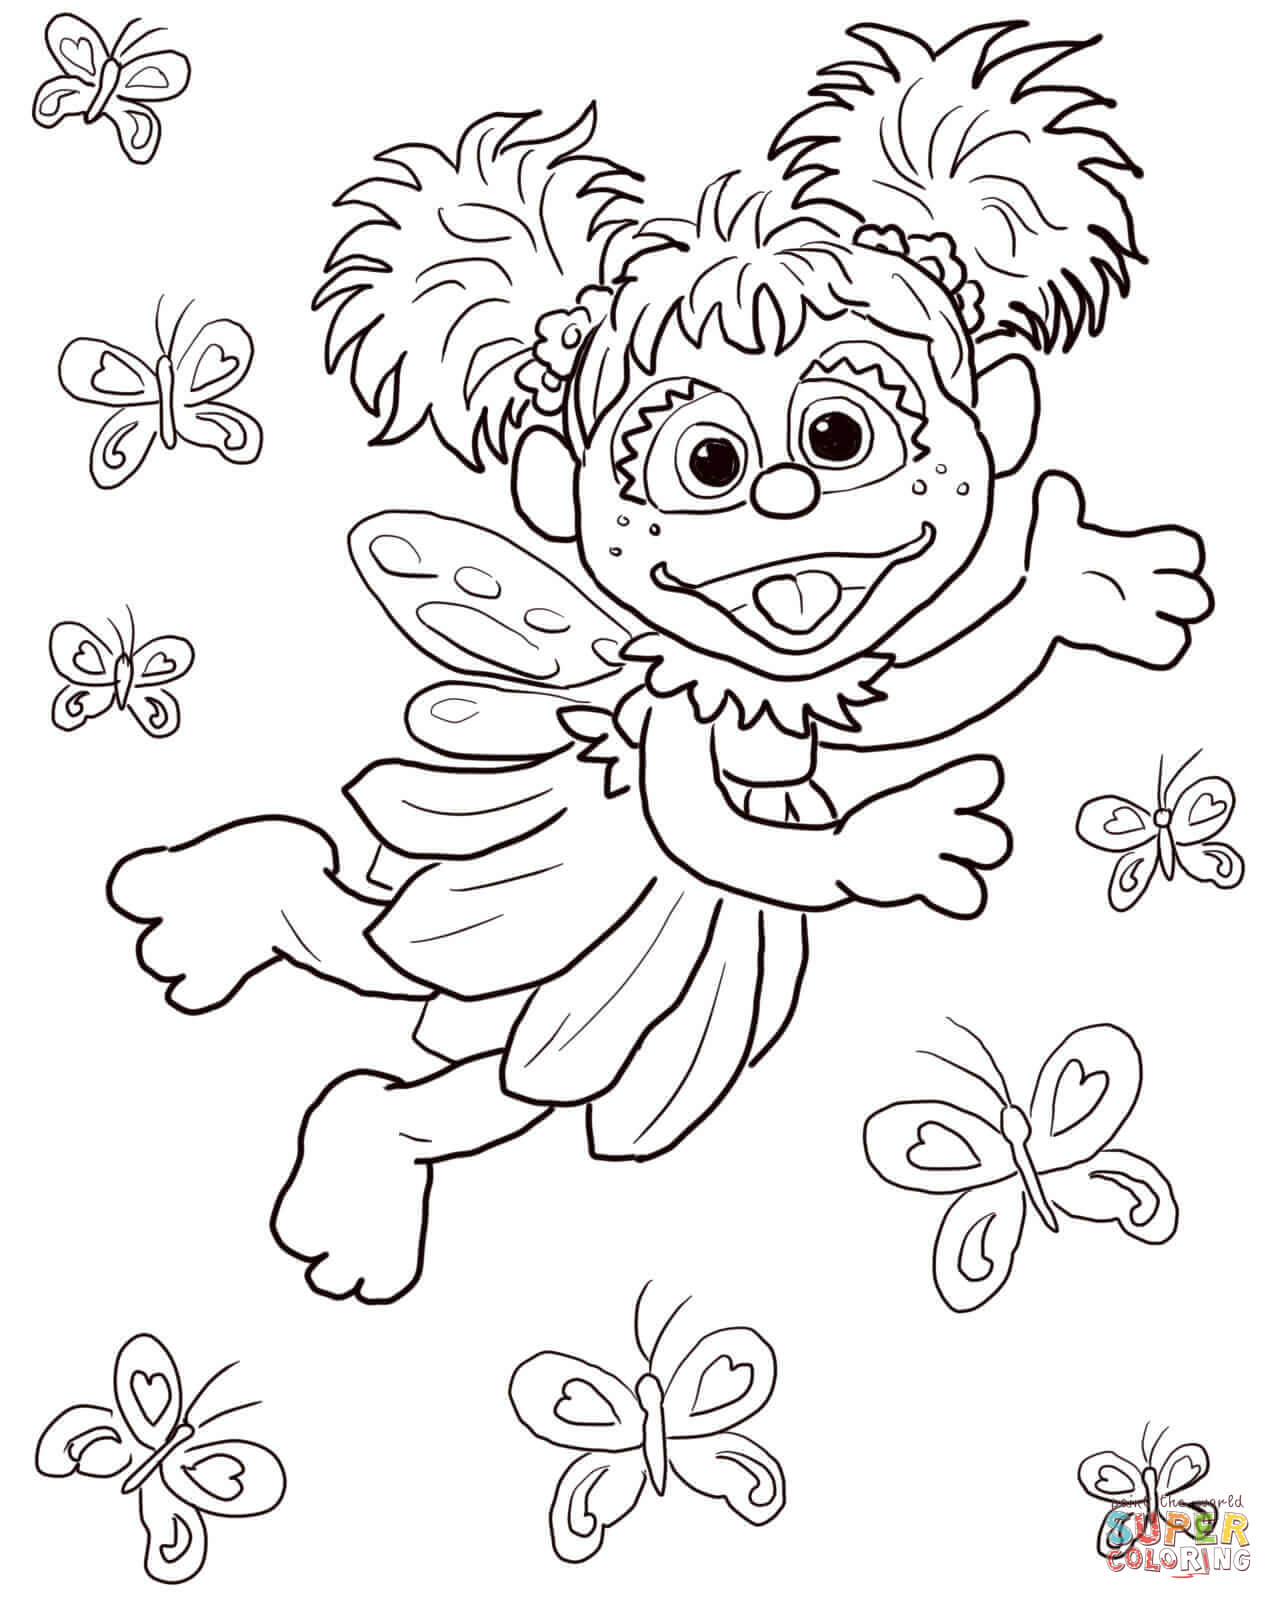 Sesame Street Coloring Pages   Free Coloring Pages - Free Printable Sesame Street Coloring Pages